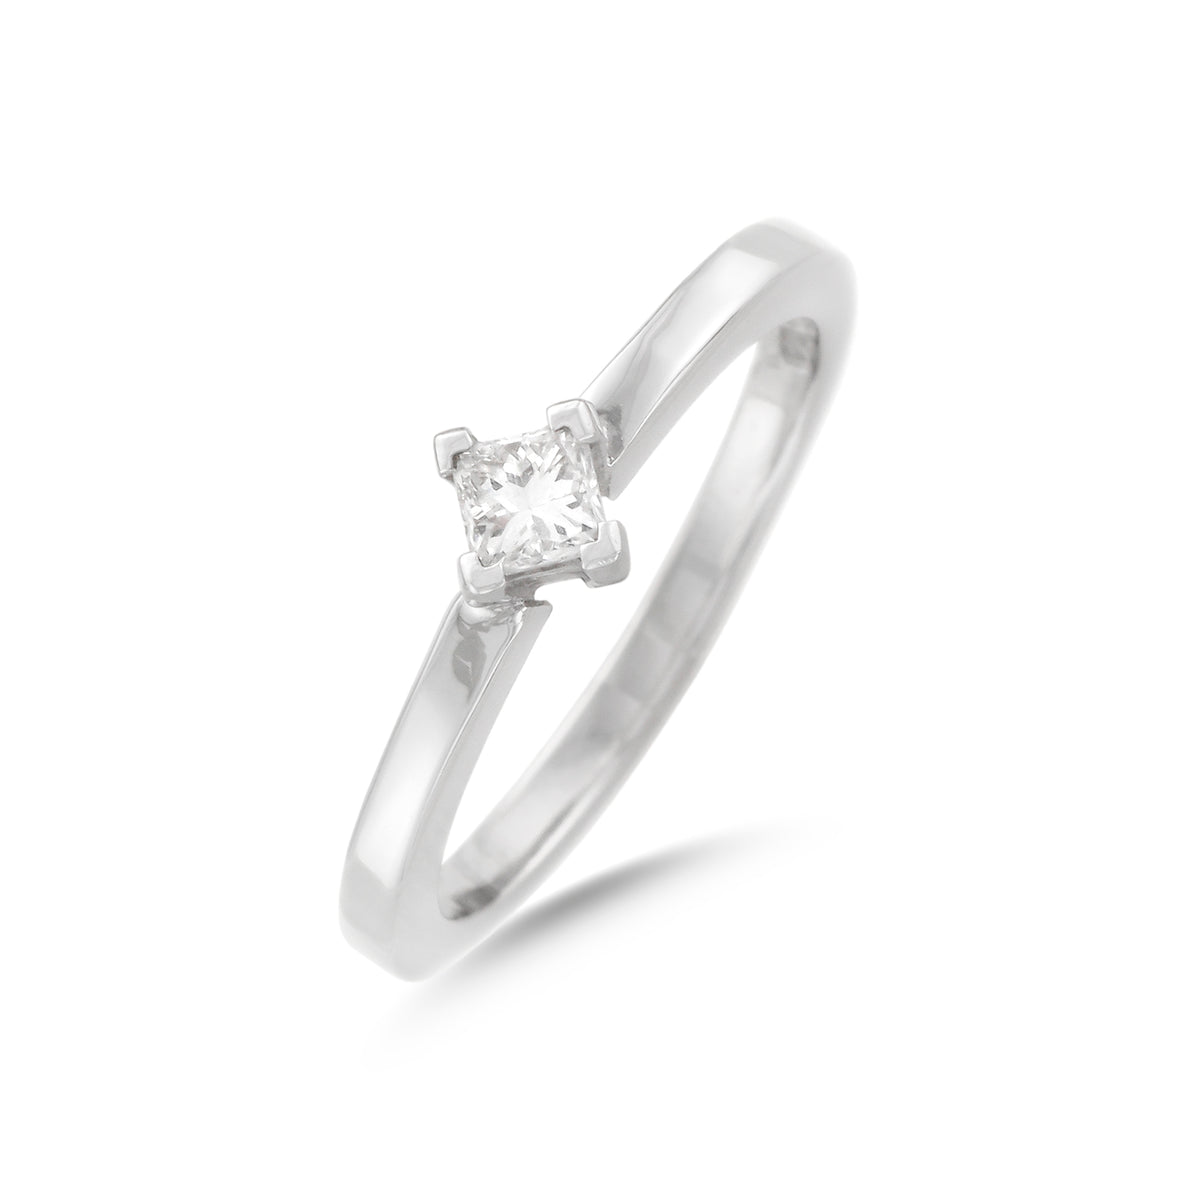 0.20ct Princess-Cut Solitaire Diamond Engagement Ring